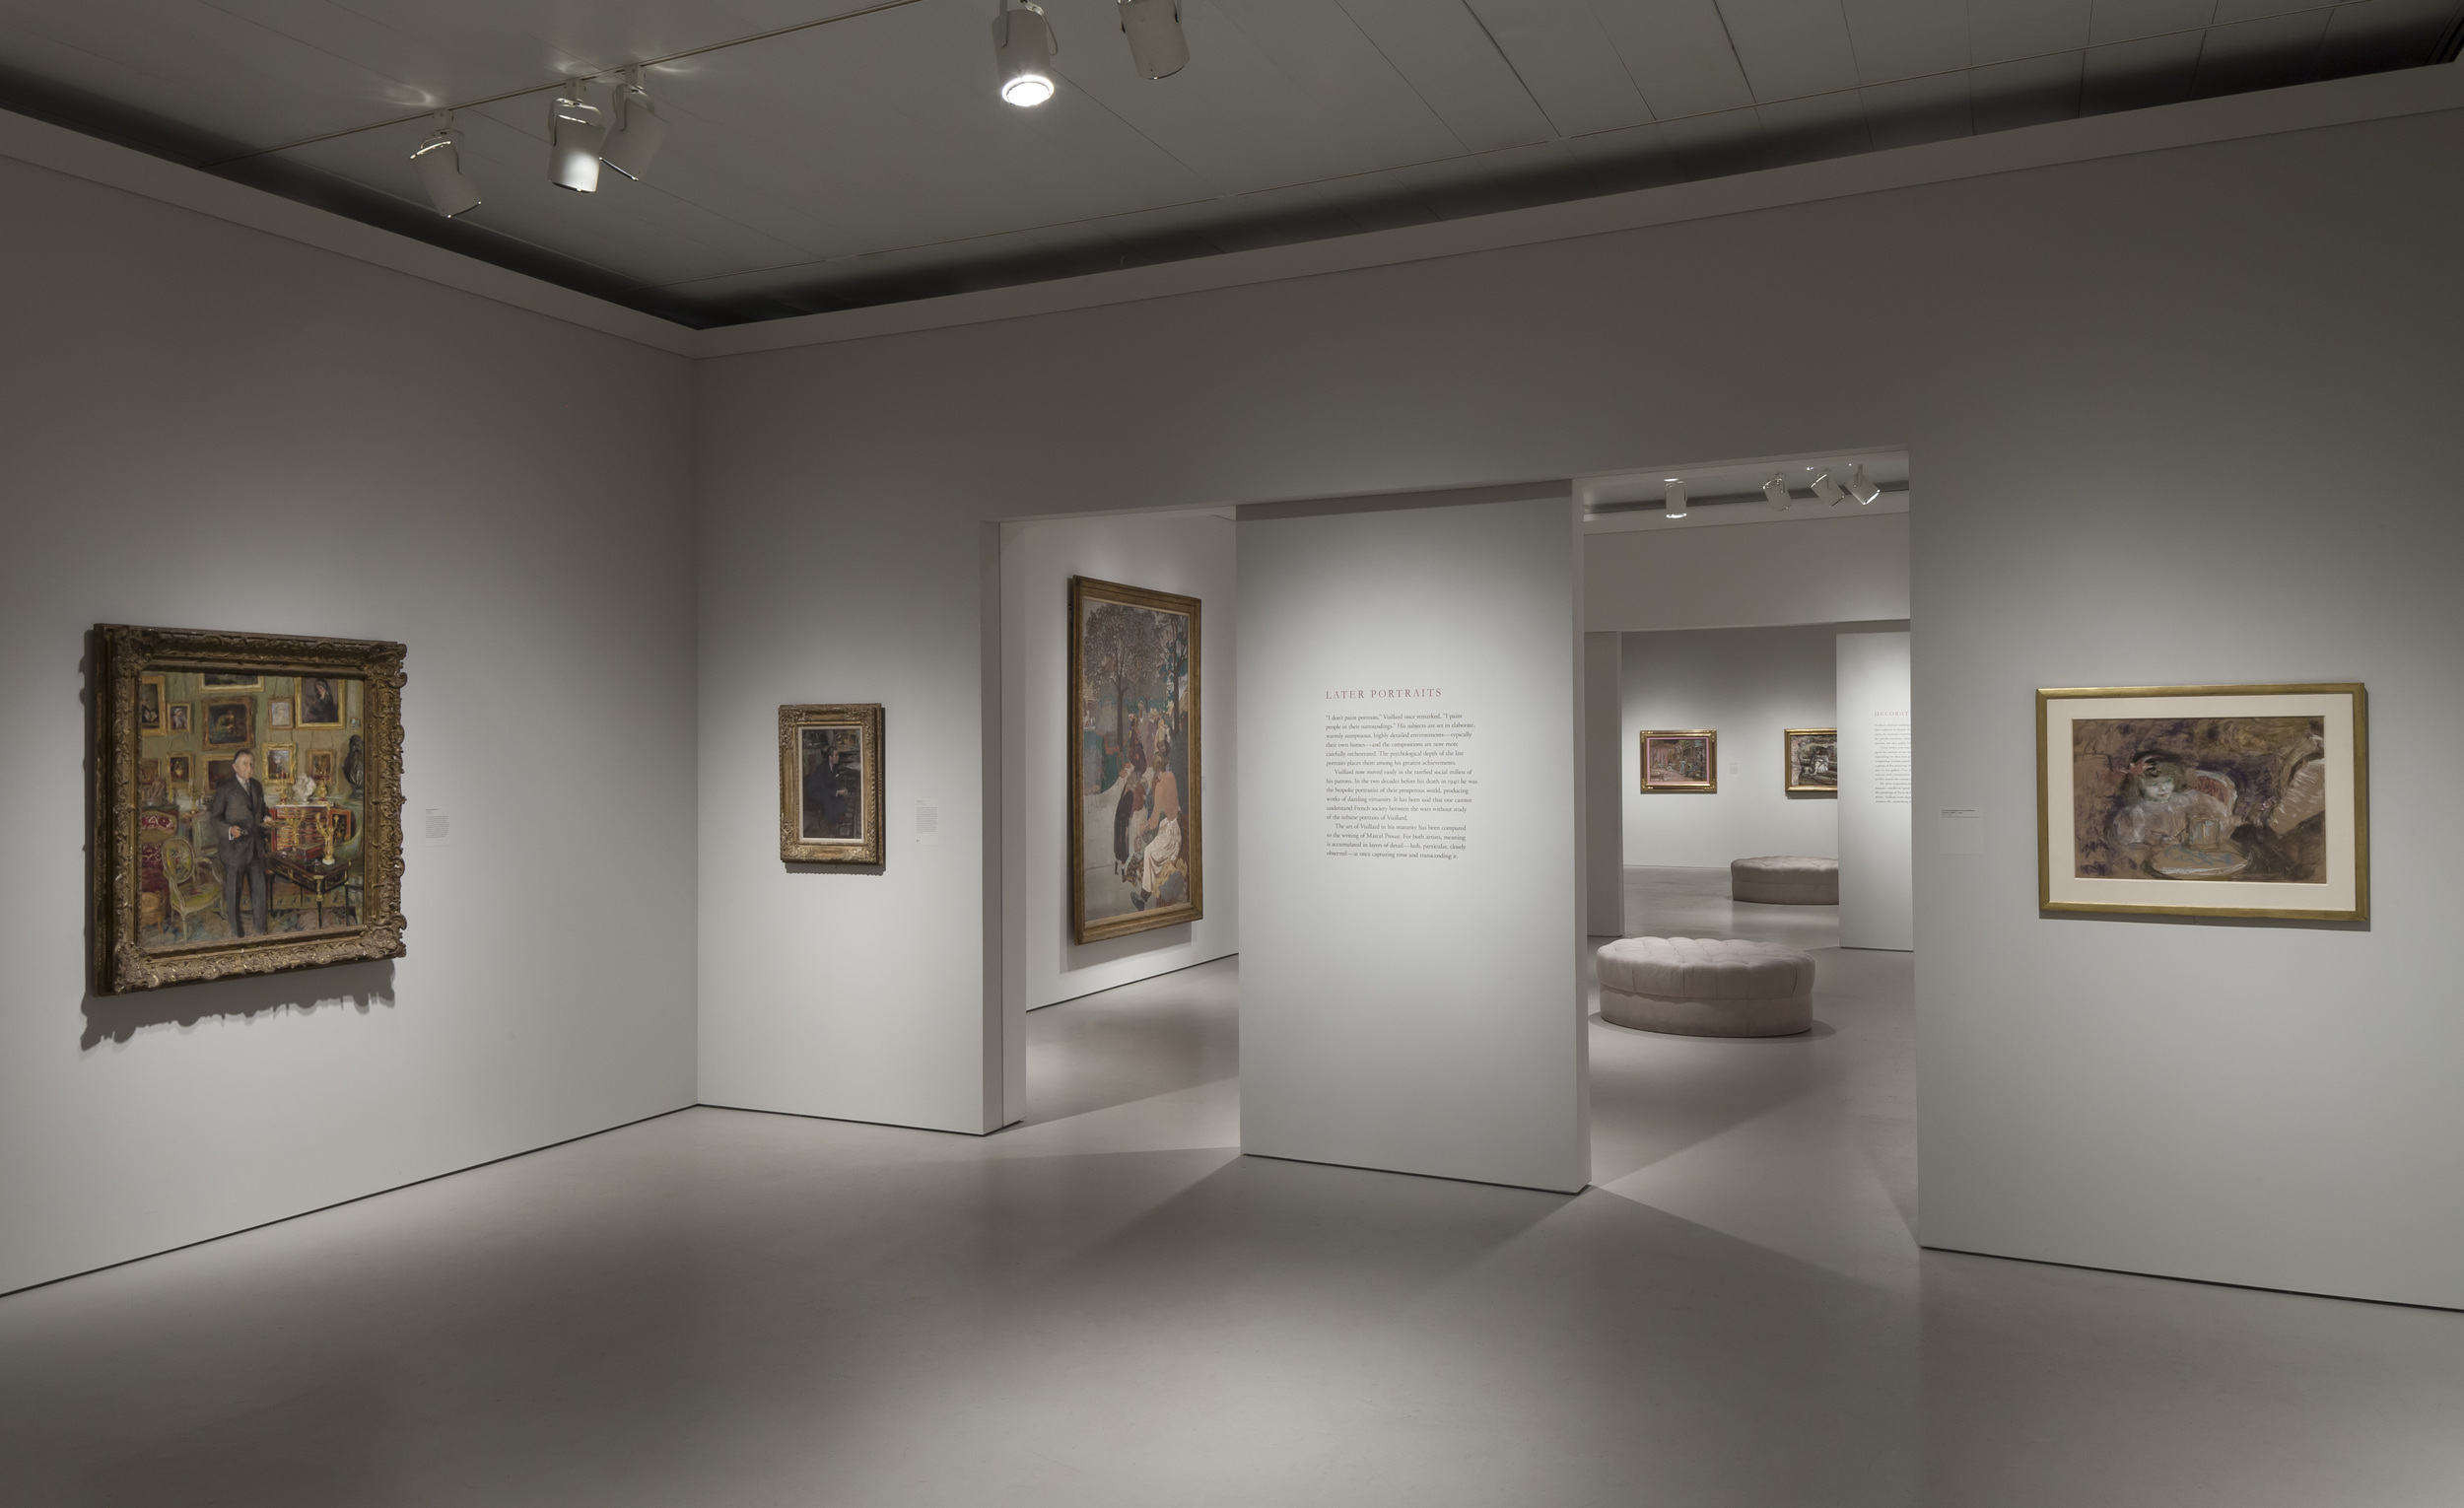 Jewish Museum Vuillard Exhibition Rooms and Ottomans